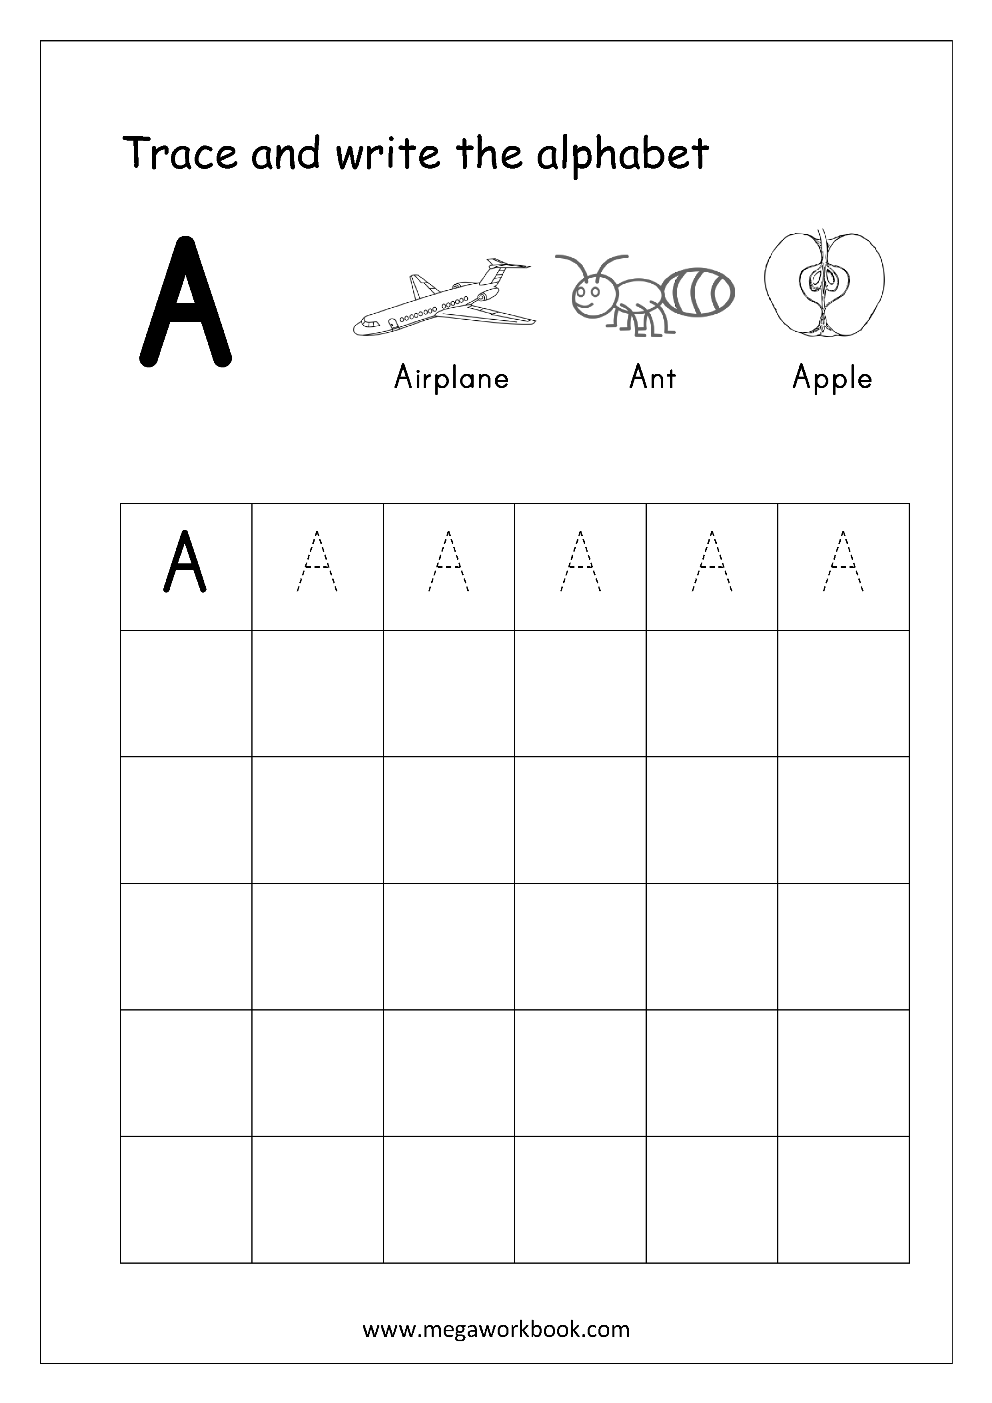 Free English Worksheets - Alphabet Writing (Capital Letters ...